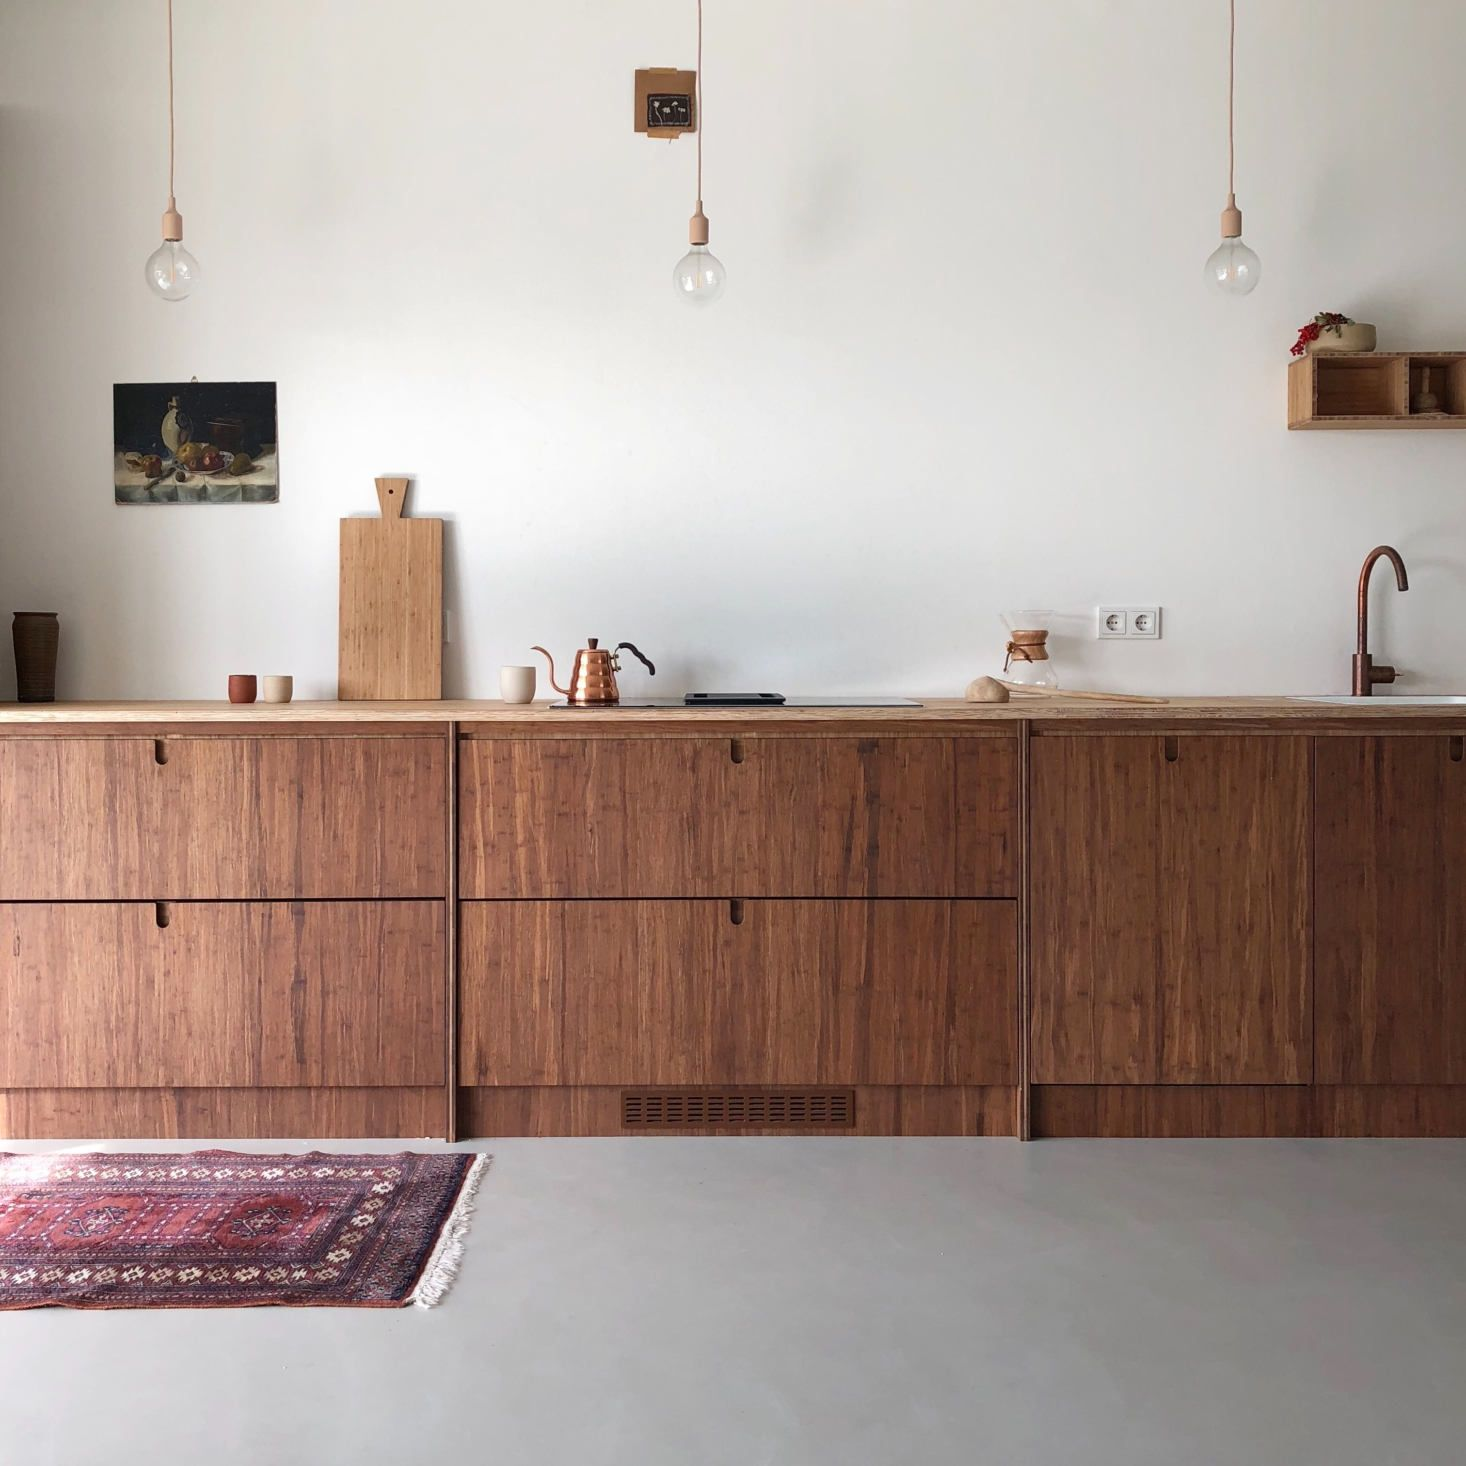 At Home With Instagram Star Sanne Hop And Her Family Of Six In The Netherlands Bamboo Kitchen Cabinets Bamboo Cabinets Wooden Kitchen Cabinets